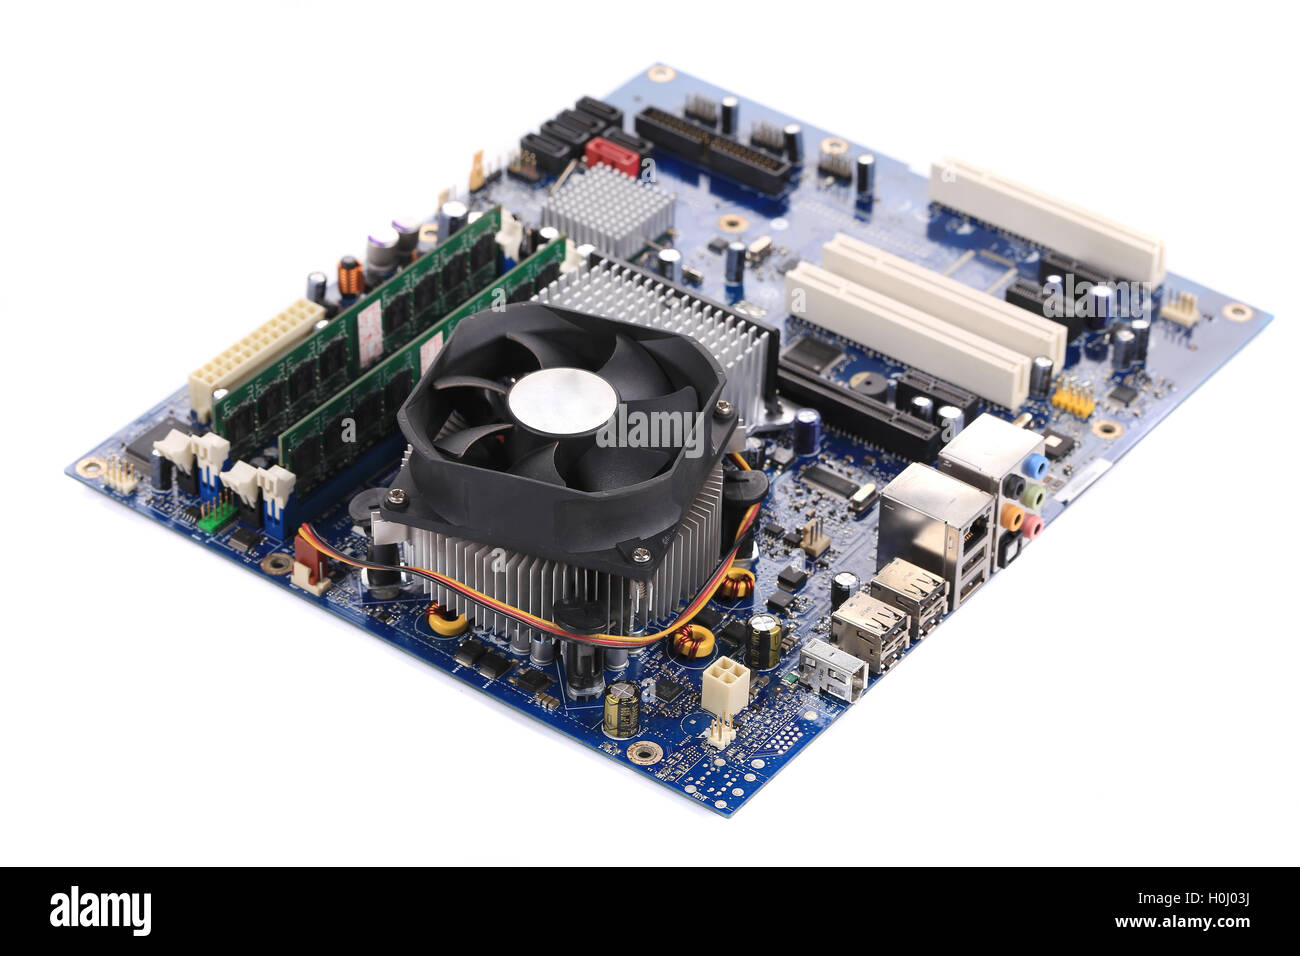 Top view of motherboard. - Stock Image